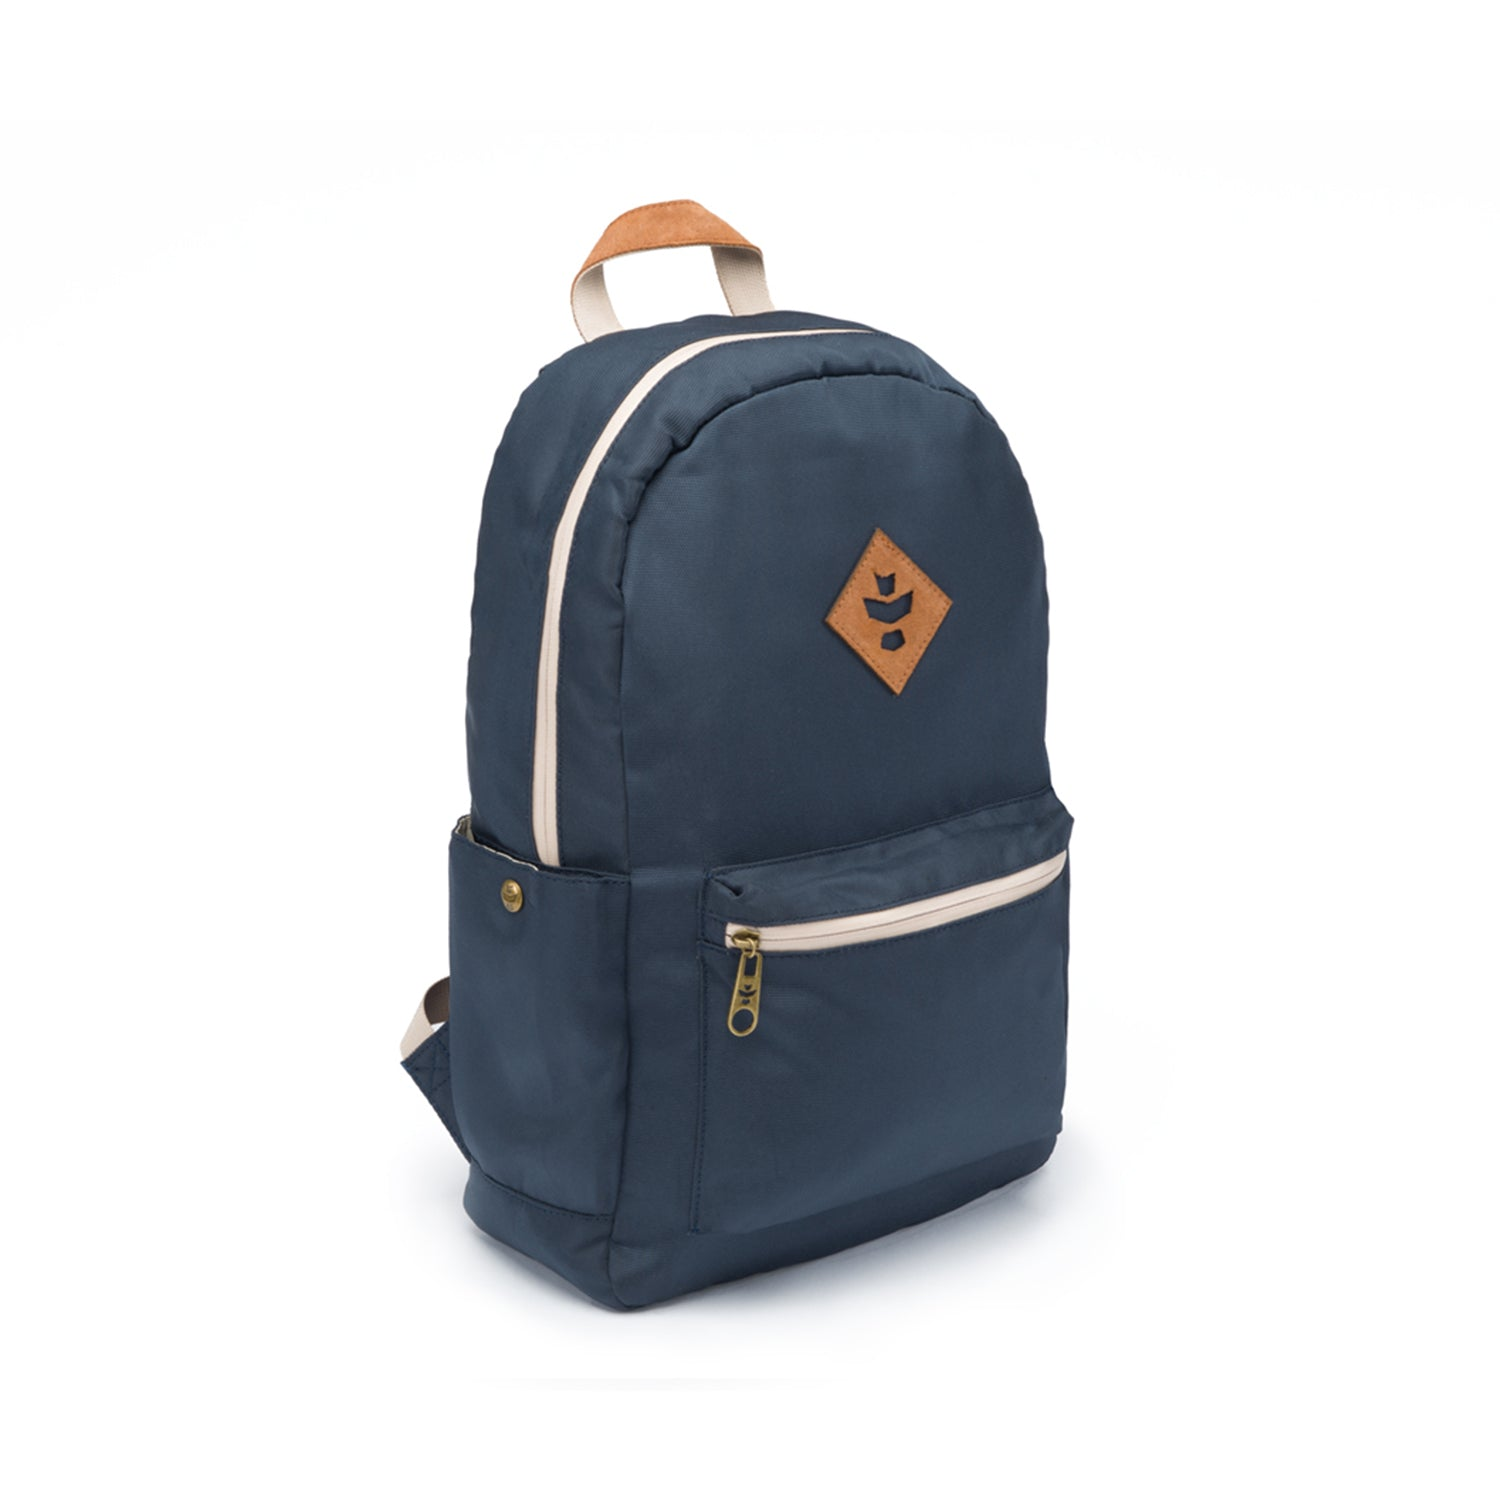 Navy Blue Nylon Smell Proof Water Resistant Backpack Bag